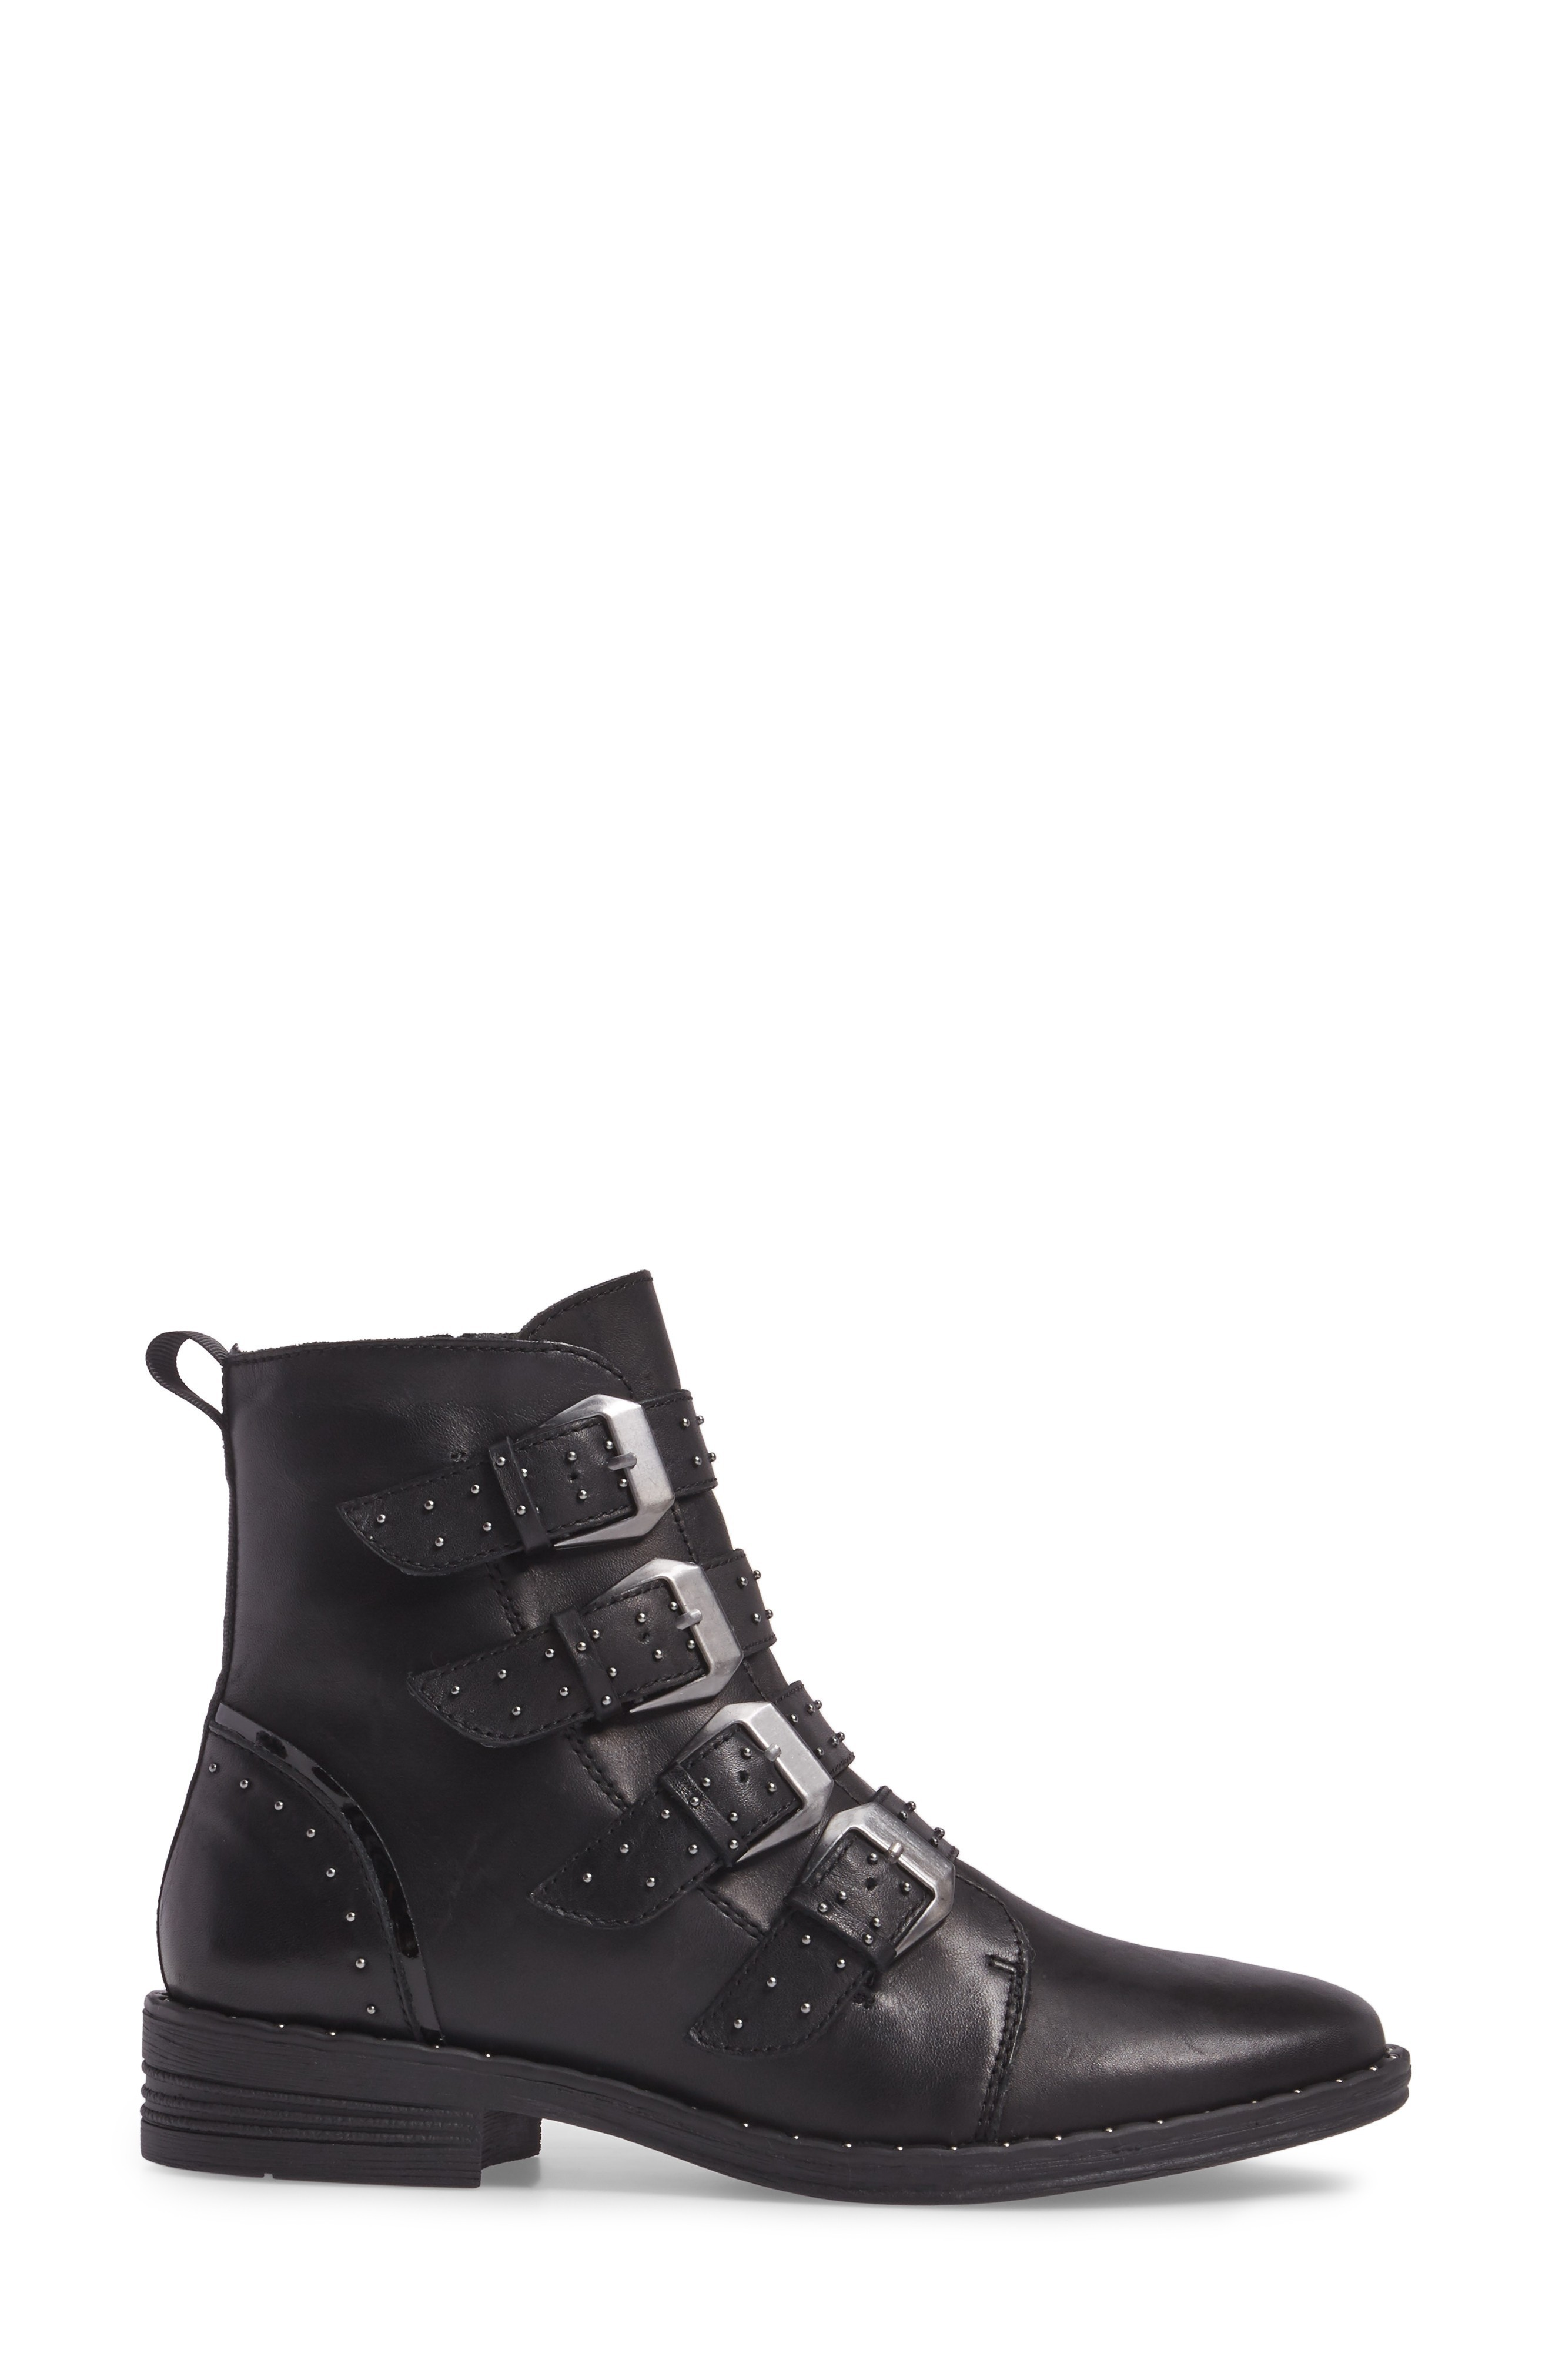 【送関無料】Steve Madden Pursue Buckle Boot ブーツ・ブーティ